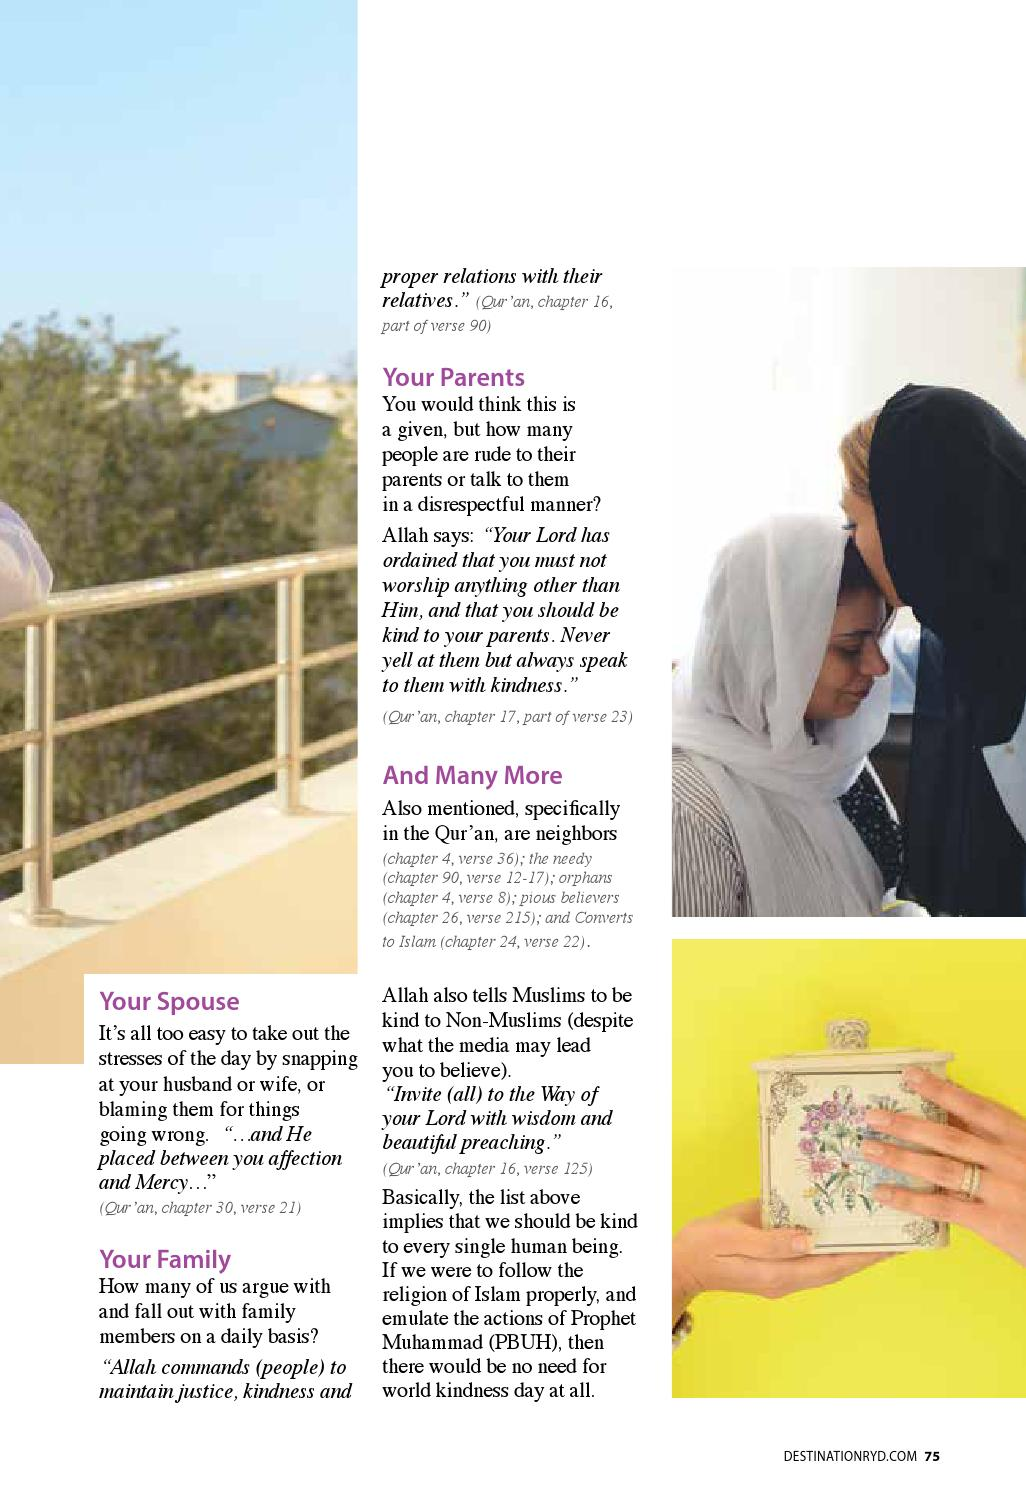 Saudi Arabia by Destination Magazine - KSA - issuu